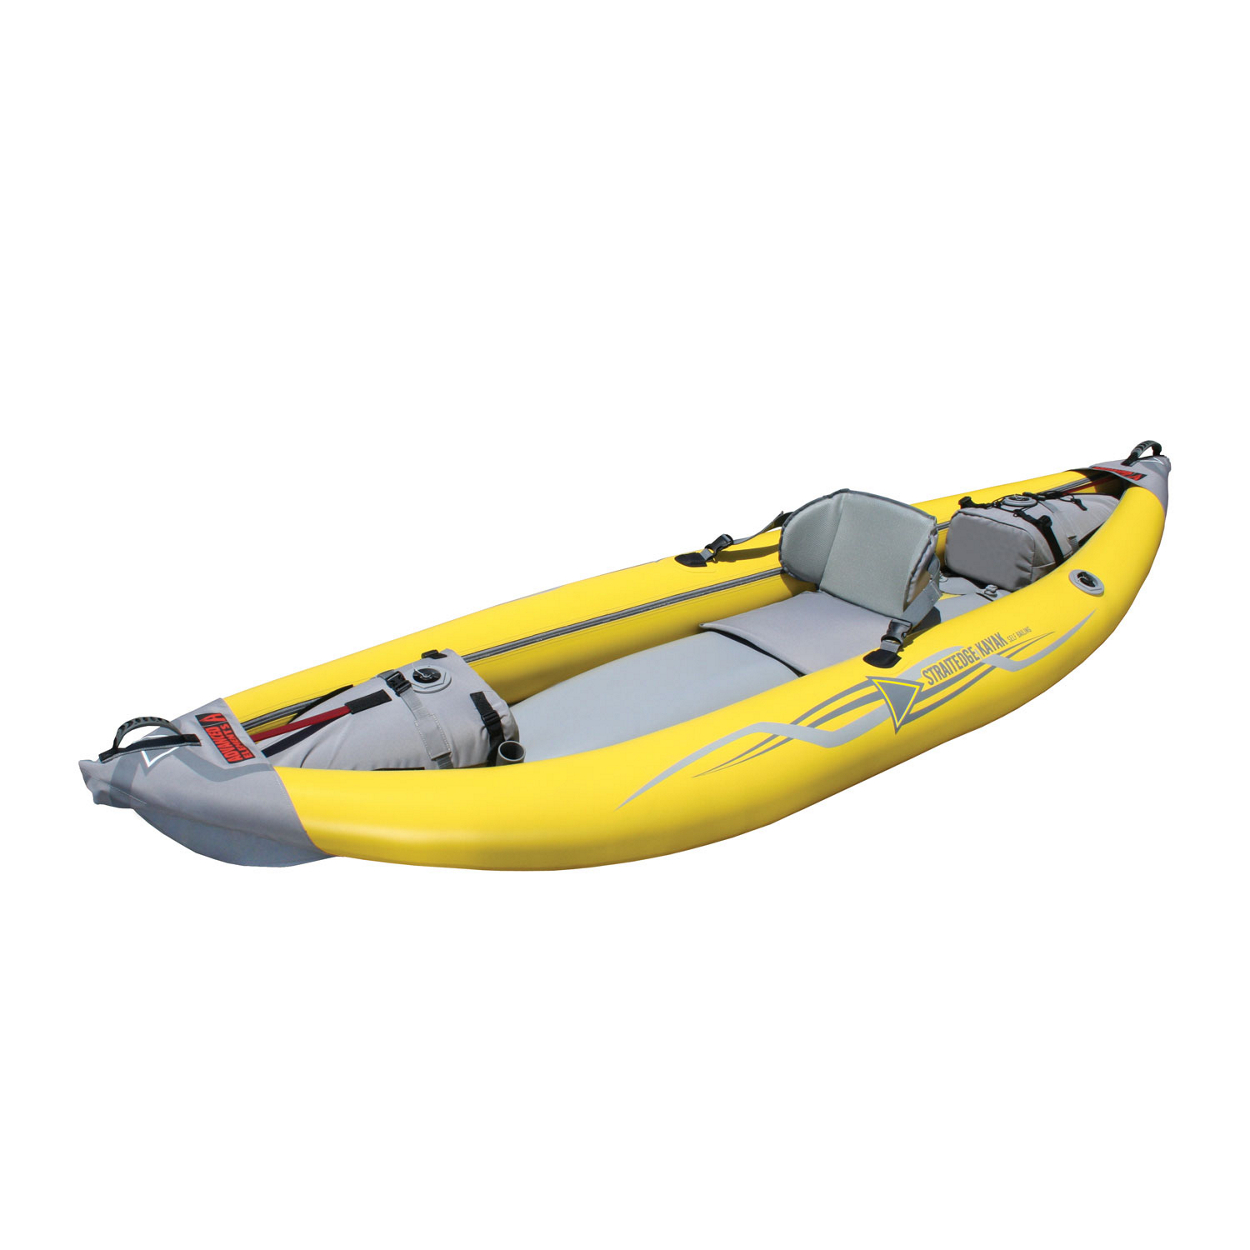 Shop Inflatable Kayaks for Sale at Austin Kayak - ACK